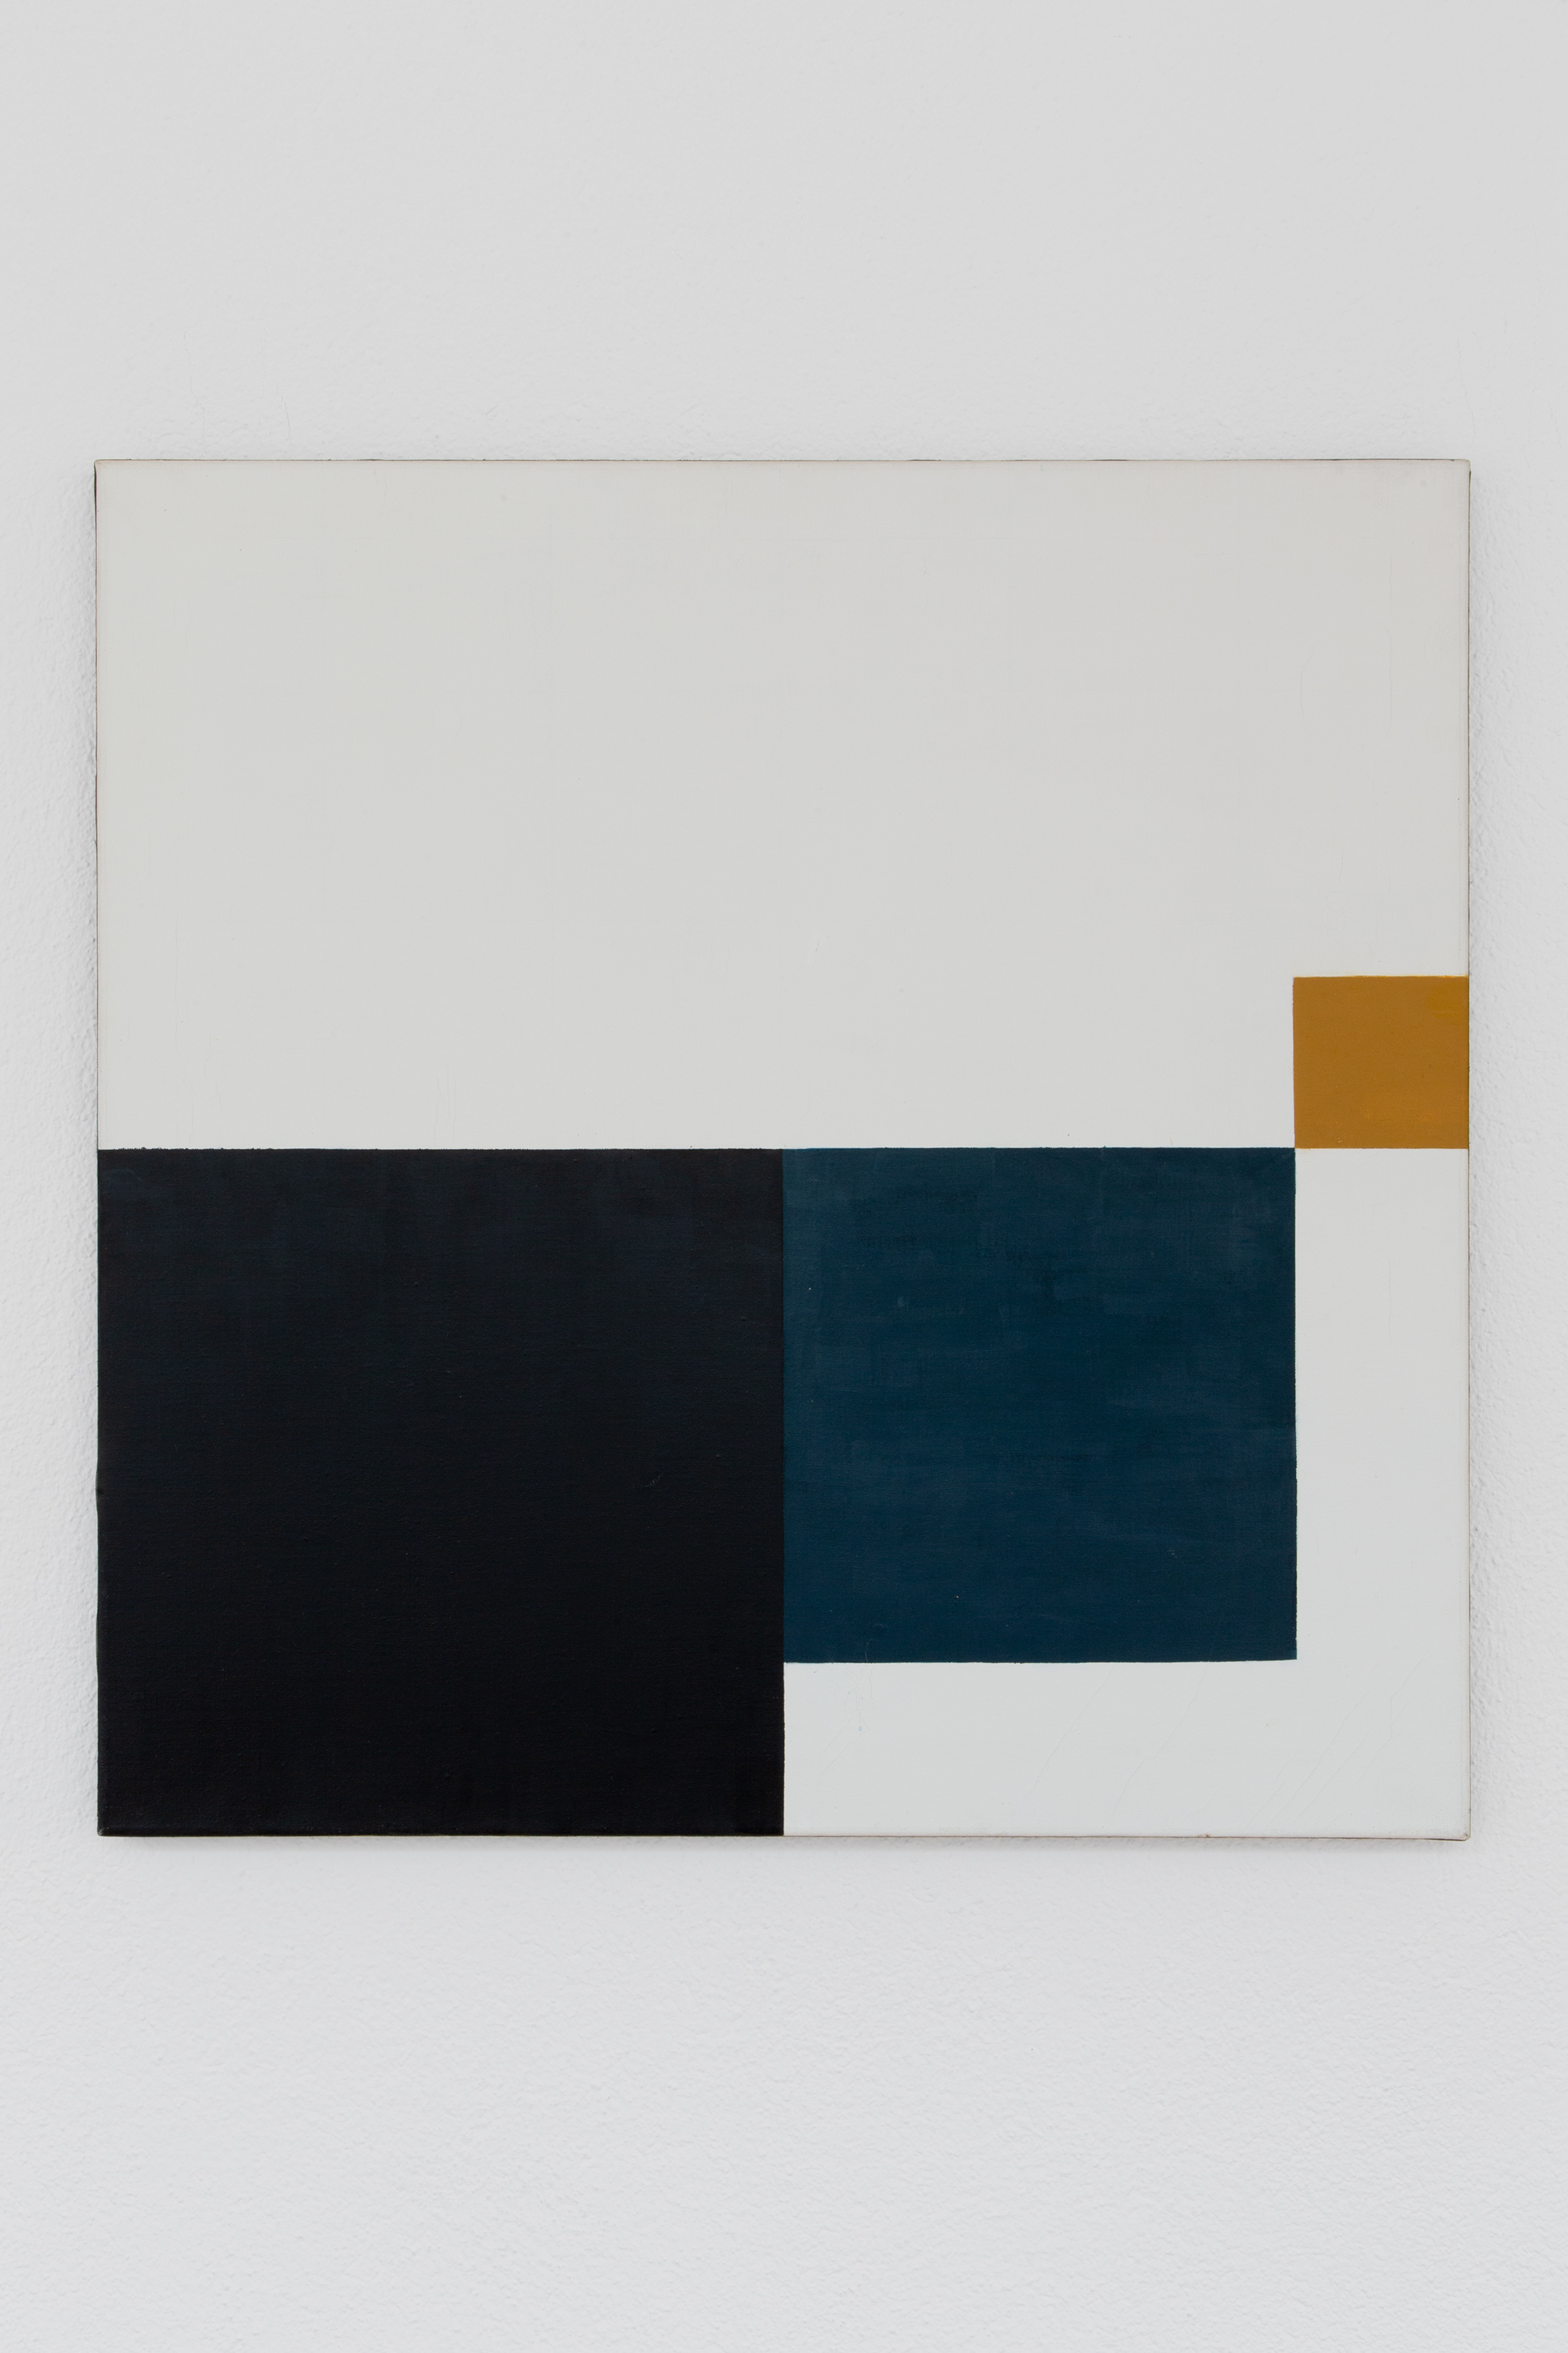 Hedi Mertens,  Ohne Titel , 1977, oil on canvas, 80 x 80 cm